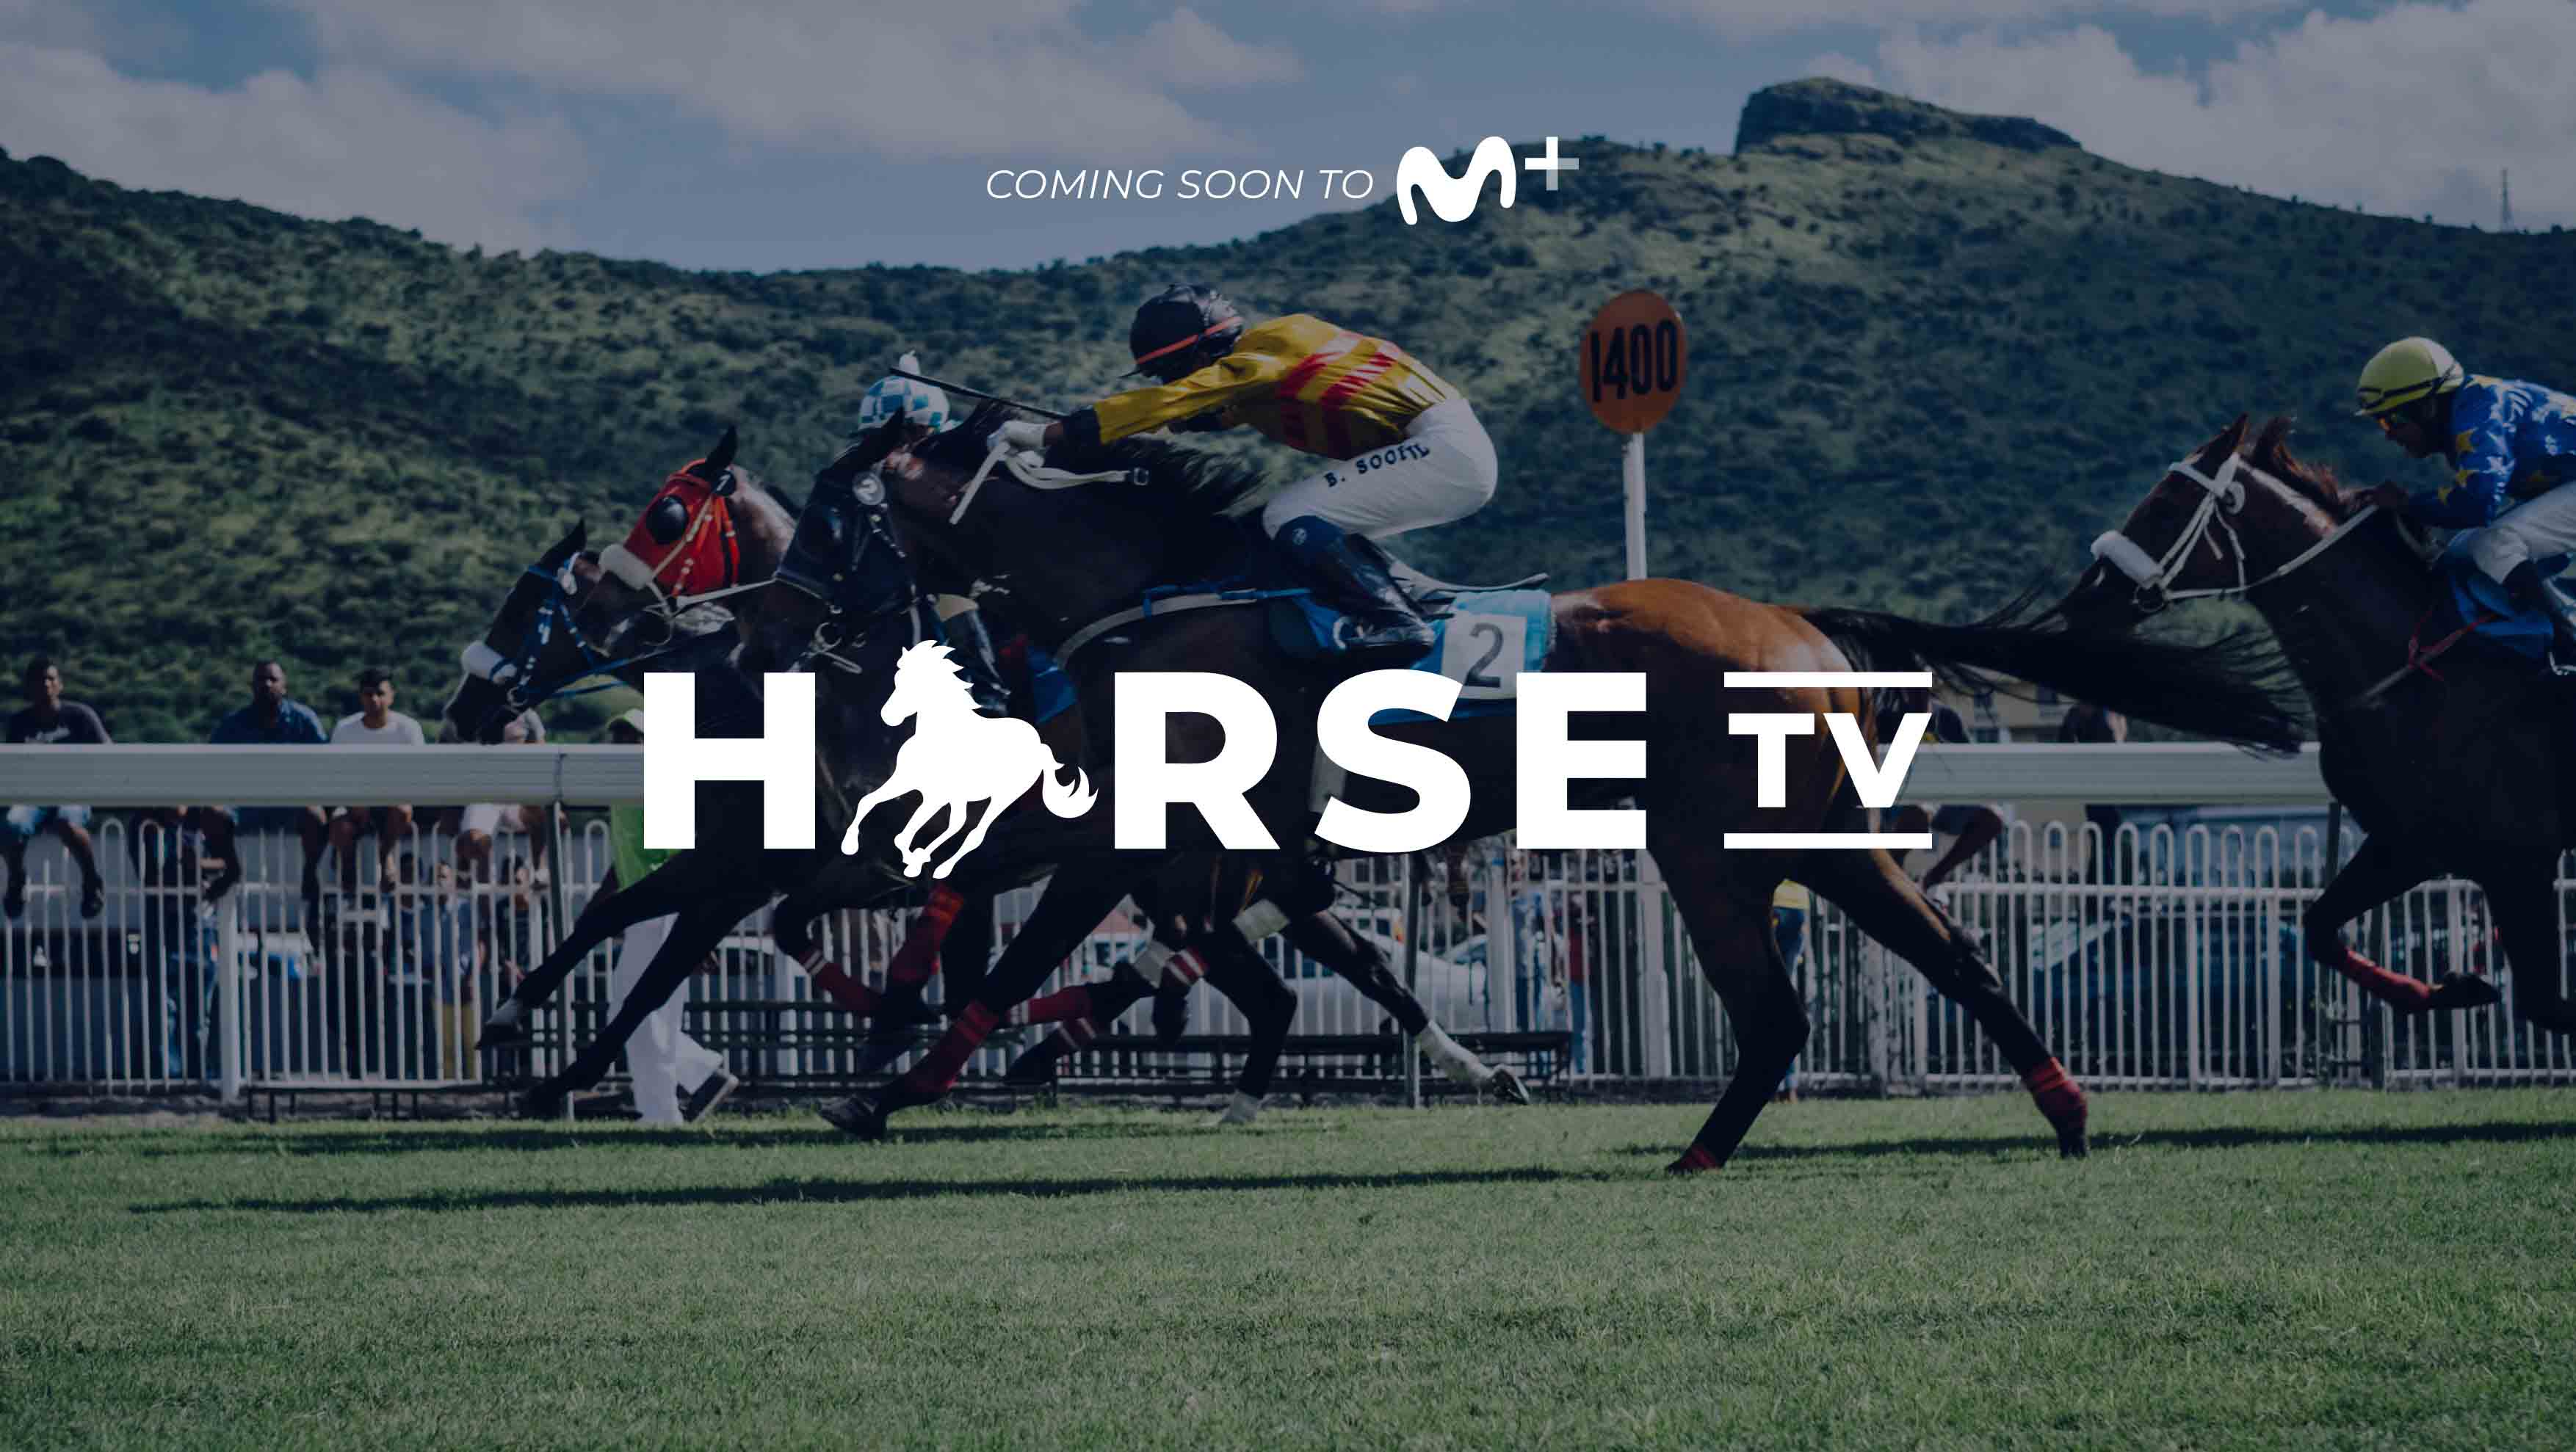 HorseTV arrives for the first time to Spain with Movistar +